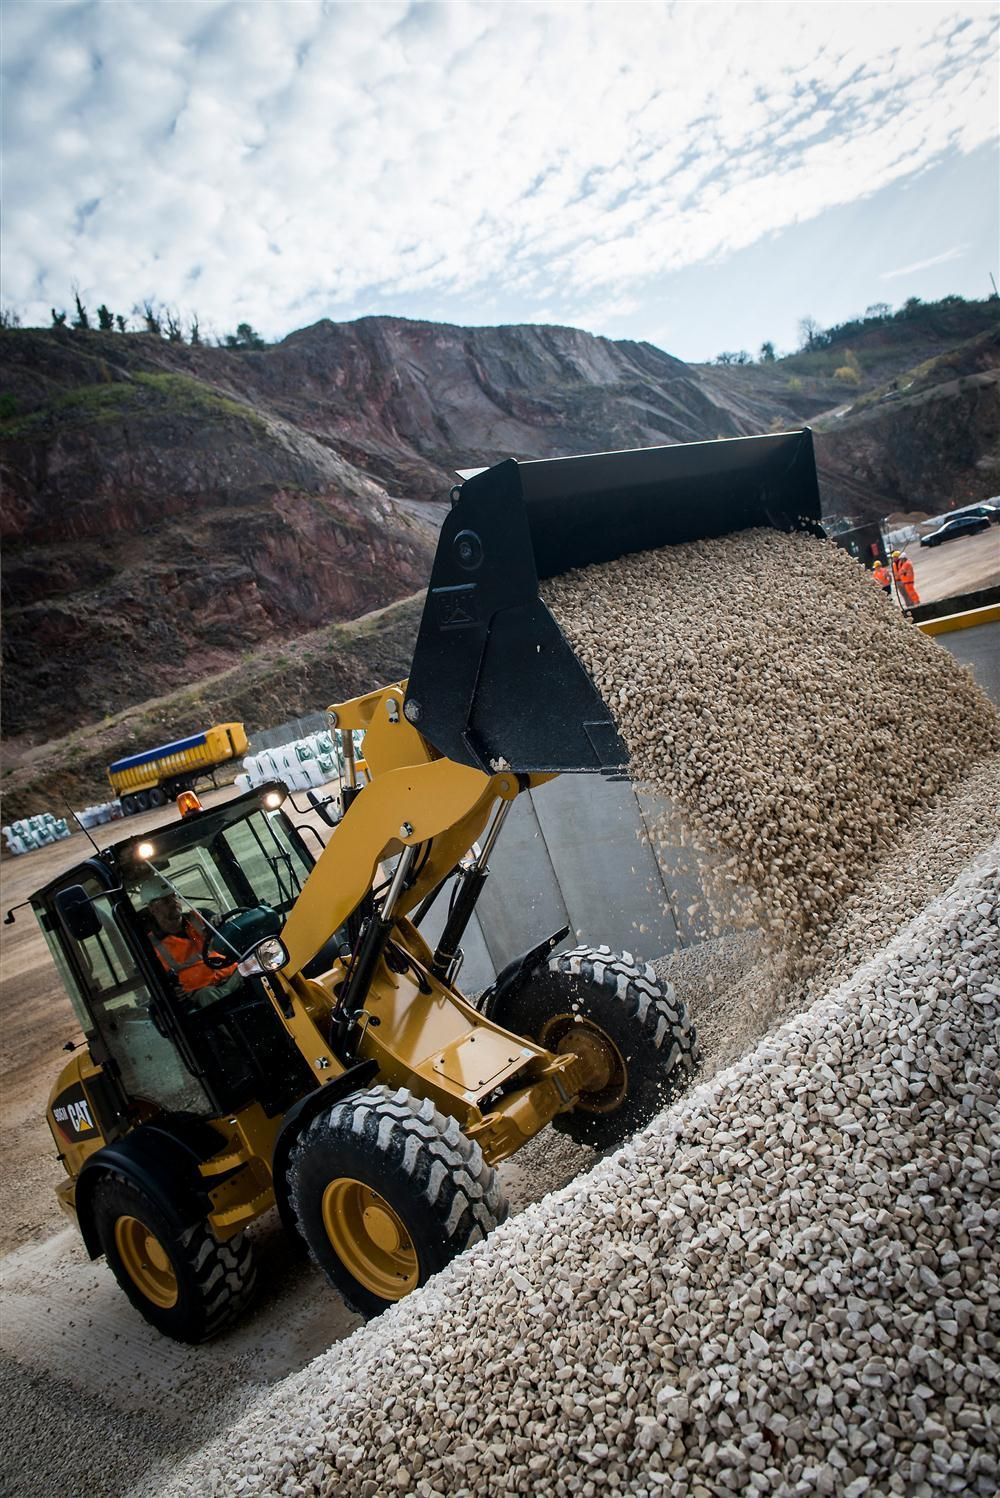 Cat M Series Compact Wheel Loaders Deliver Performance Versatility Story Id 24993 Equipamentos Pesados